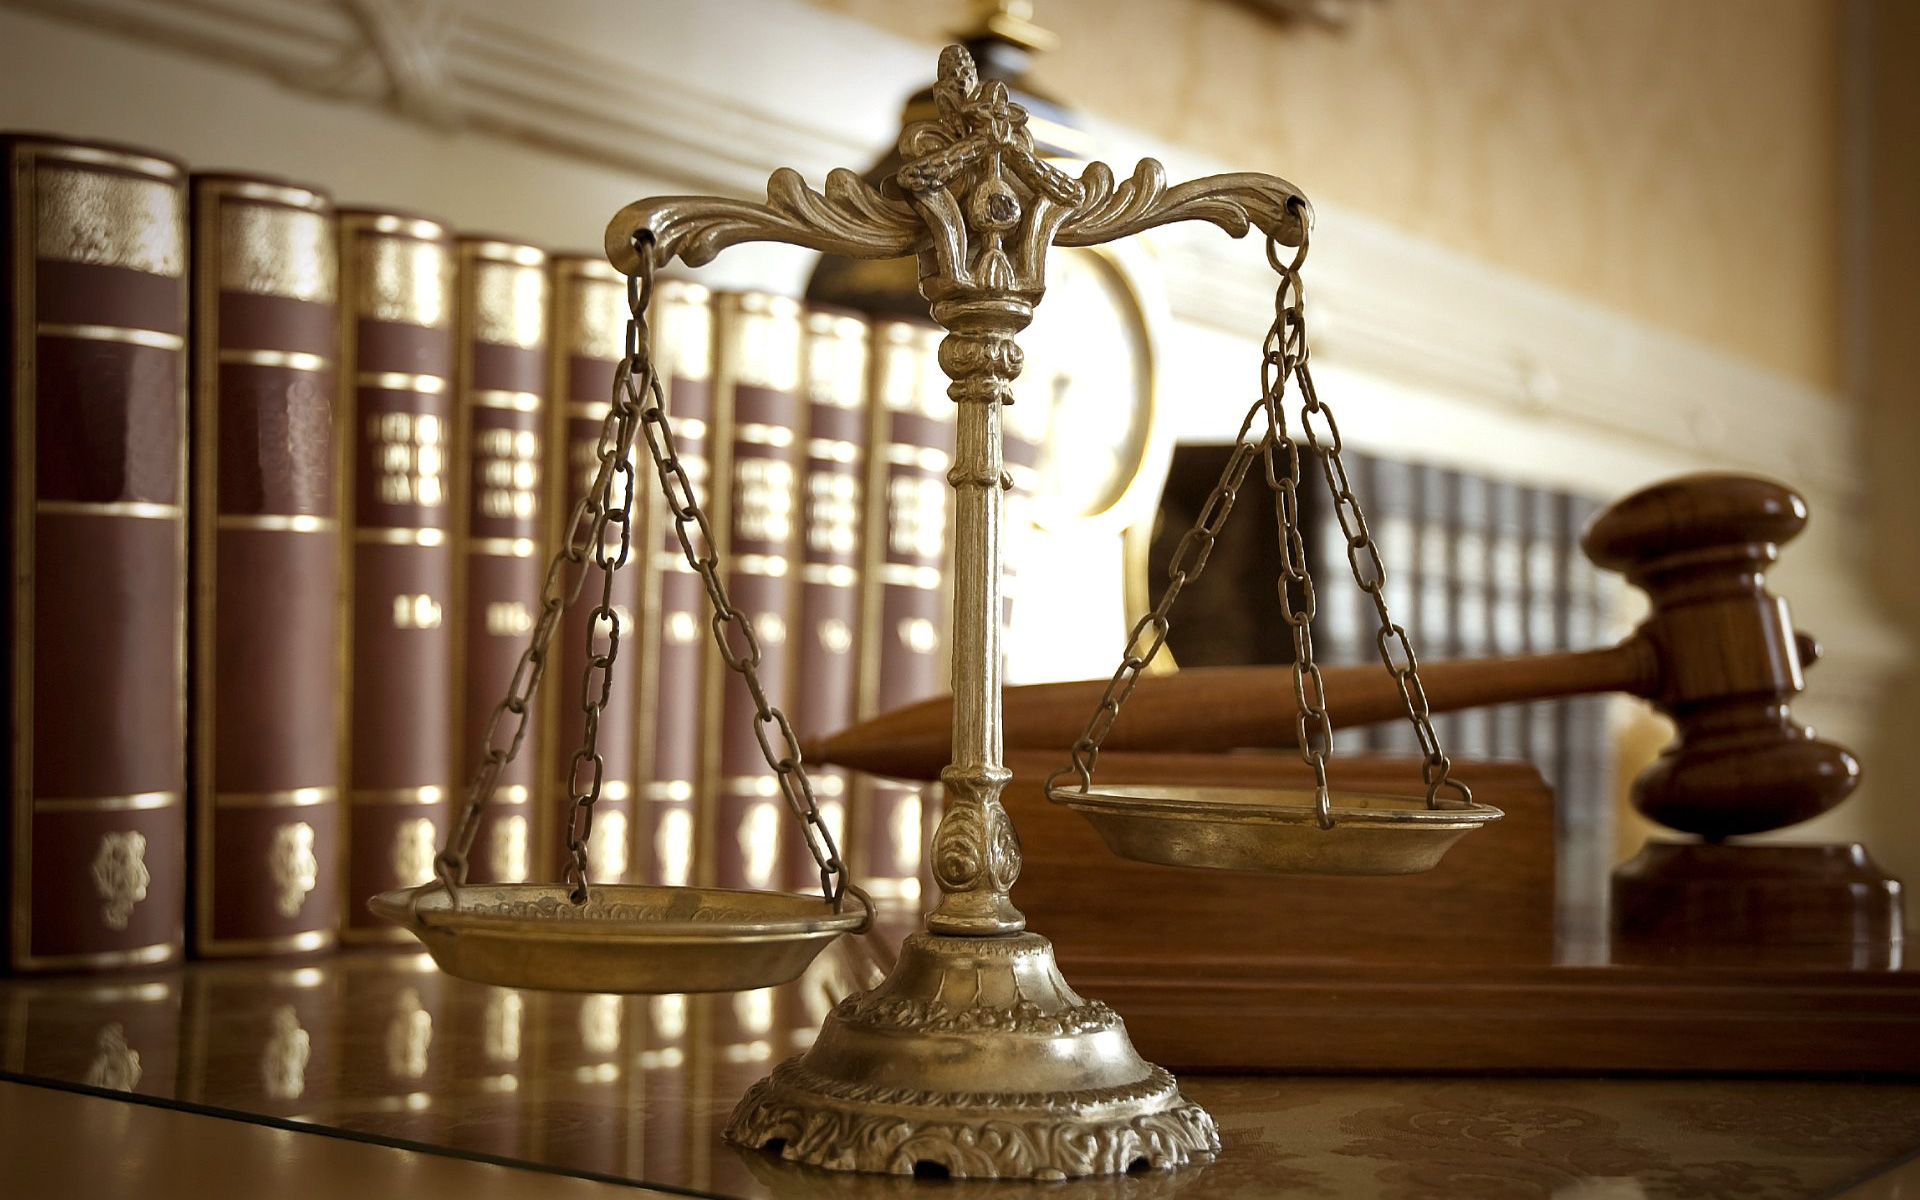 Reliable IT Support & Solutions For Legal Firms - Excite IT